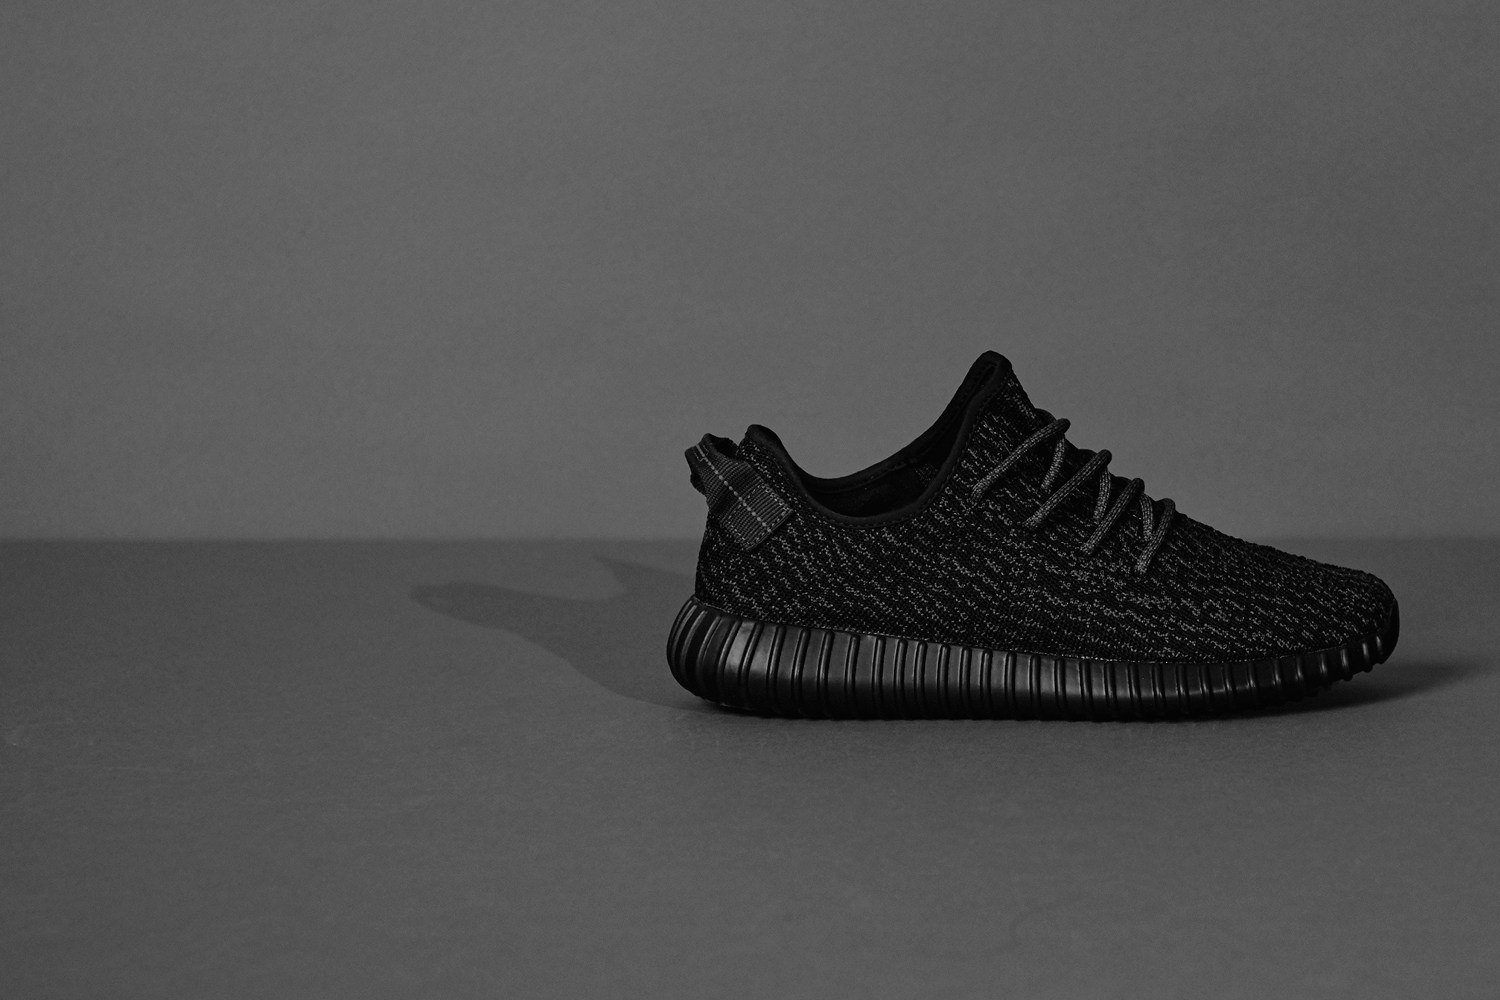 Adidas Yeezy Boost 350 'Pirate Black' AQ 2659 2015 Yen Chee